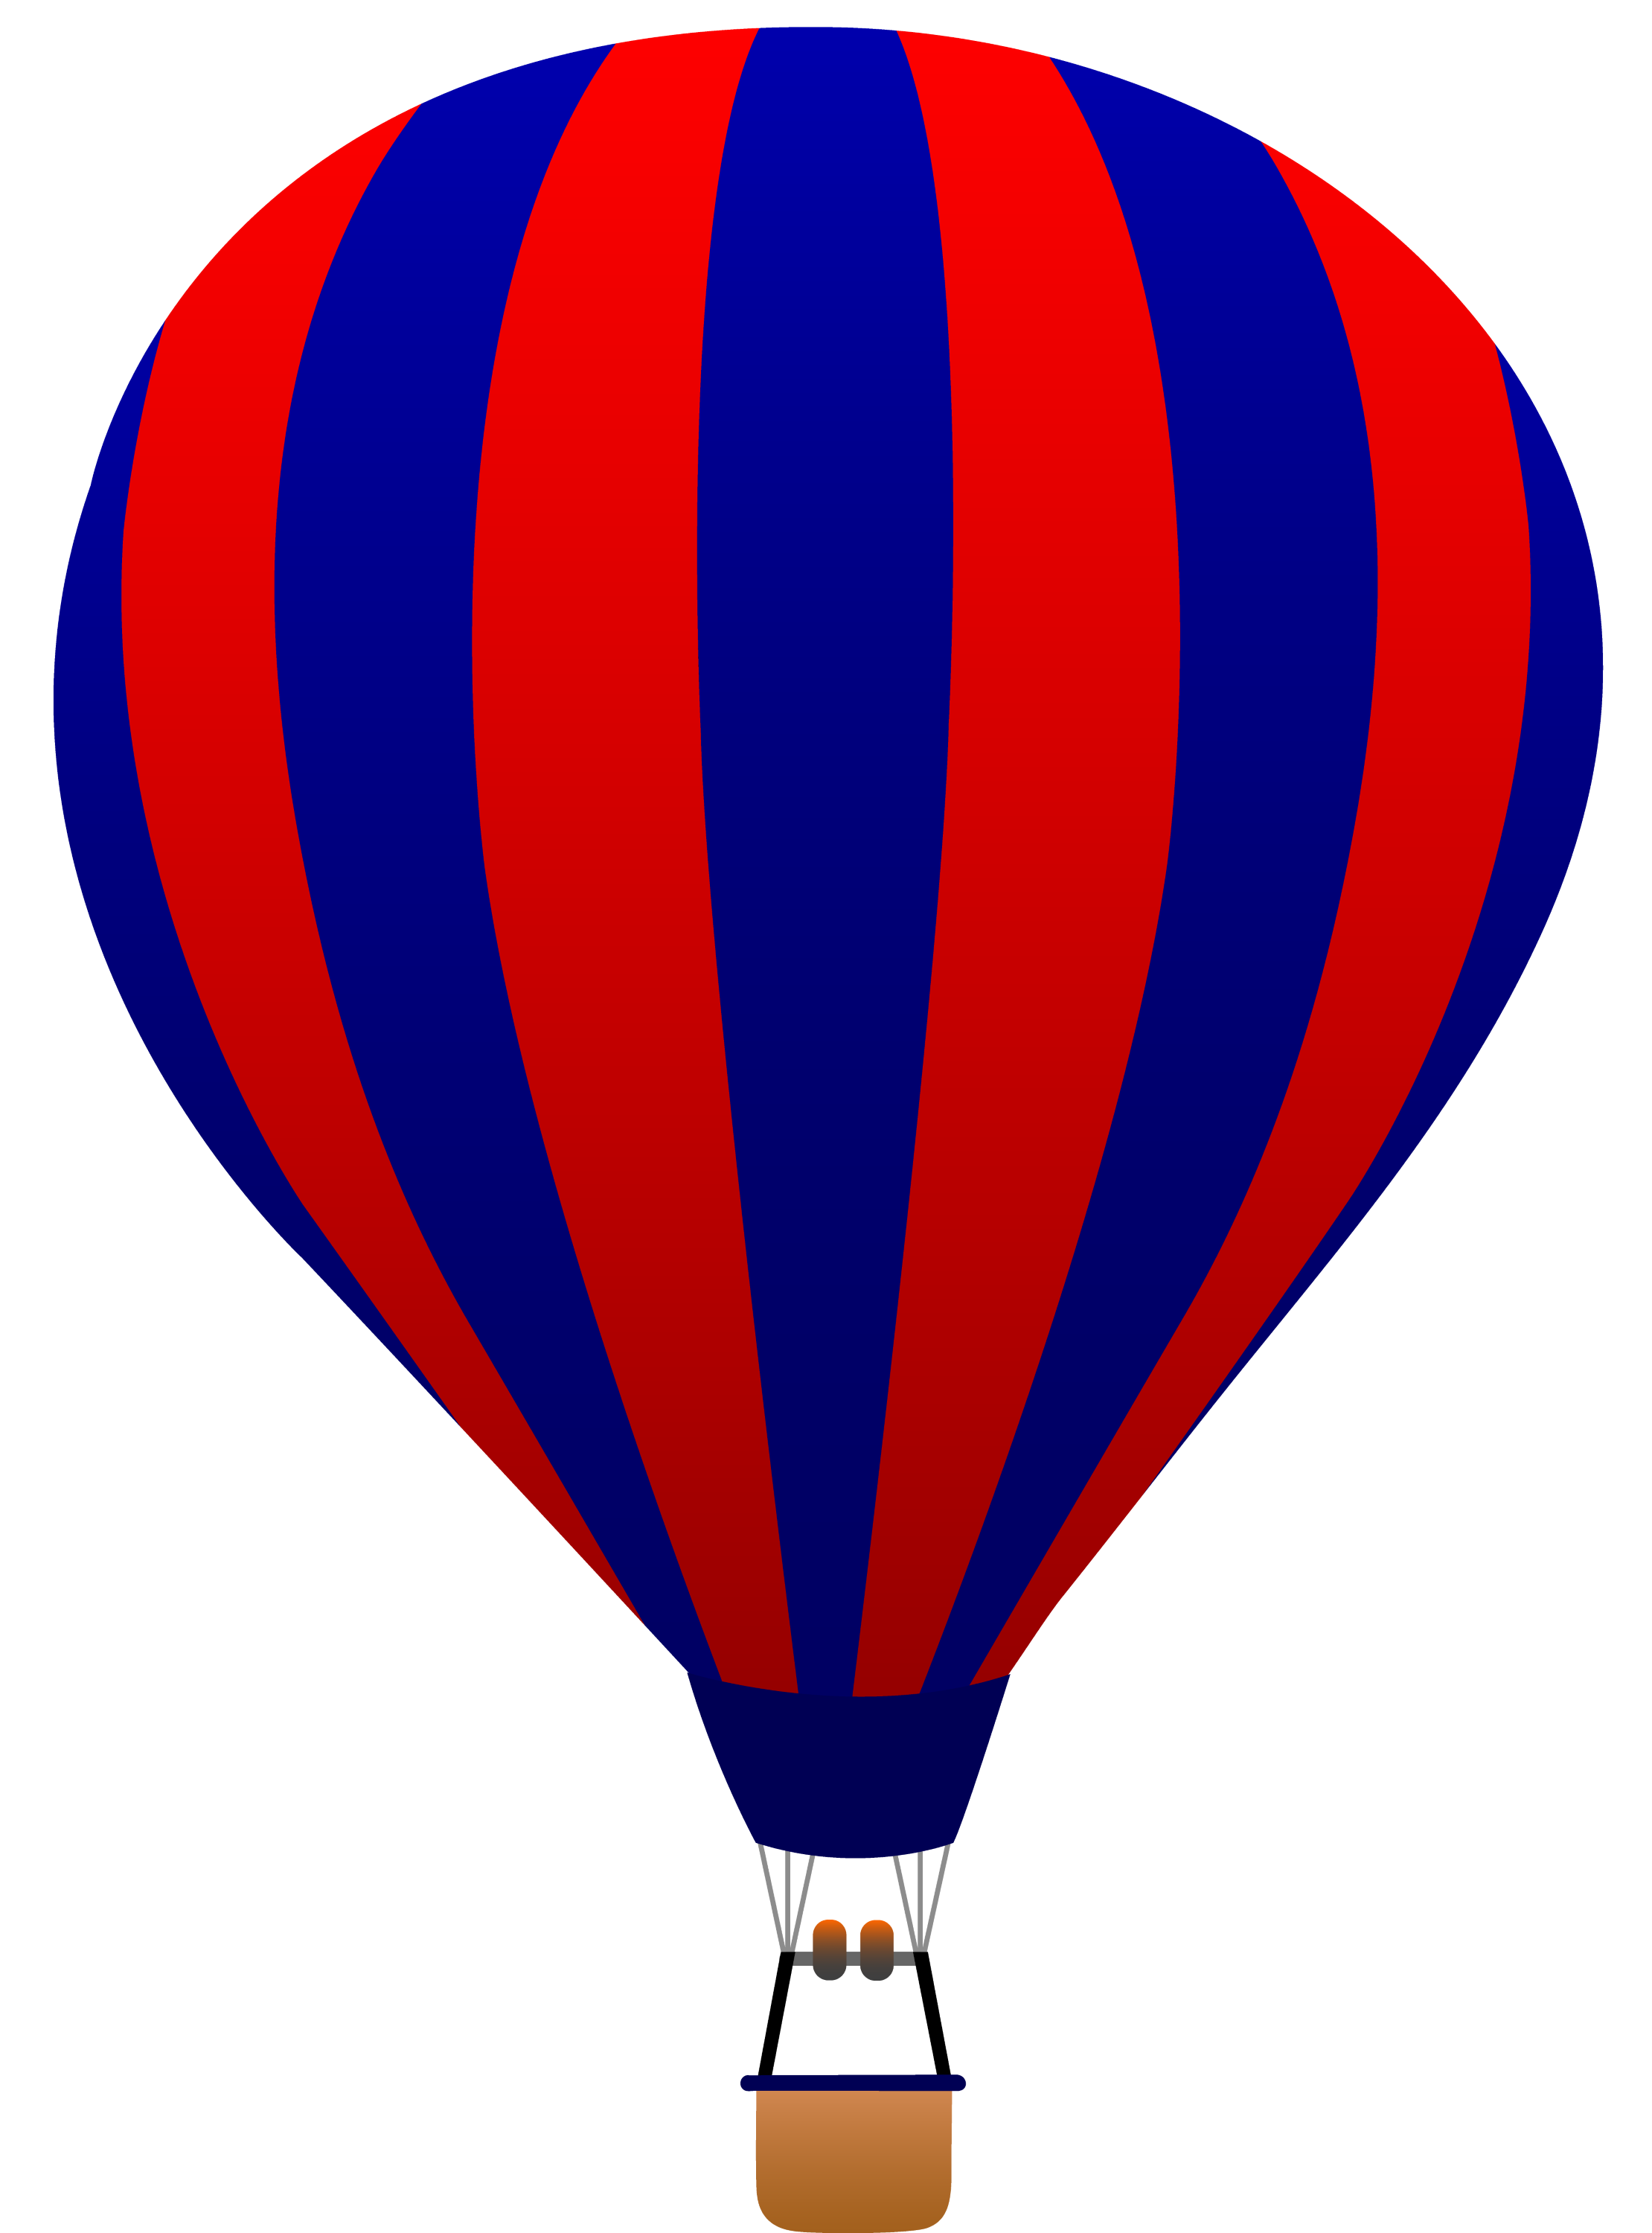 Red and Blue Striped Hot Air Balloon - Free Clip Art